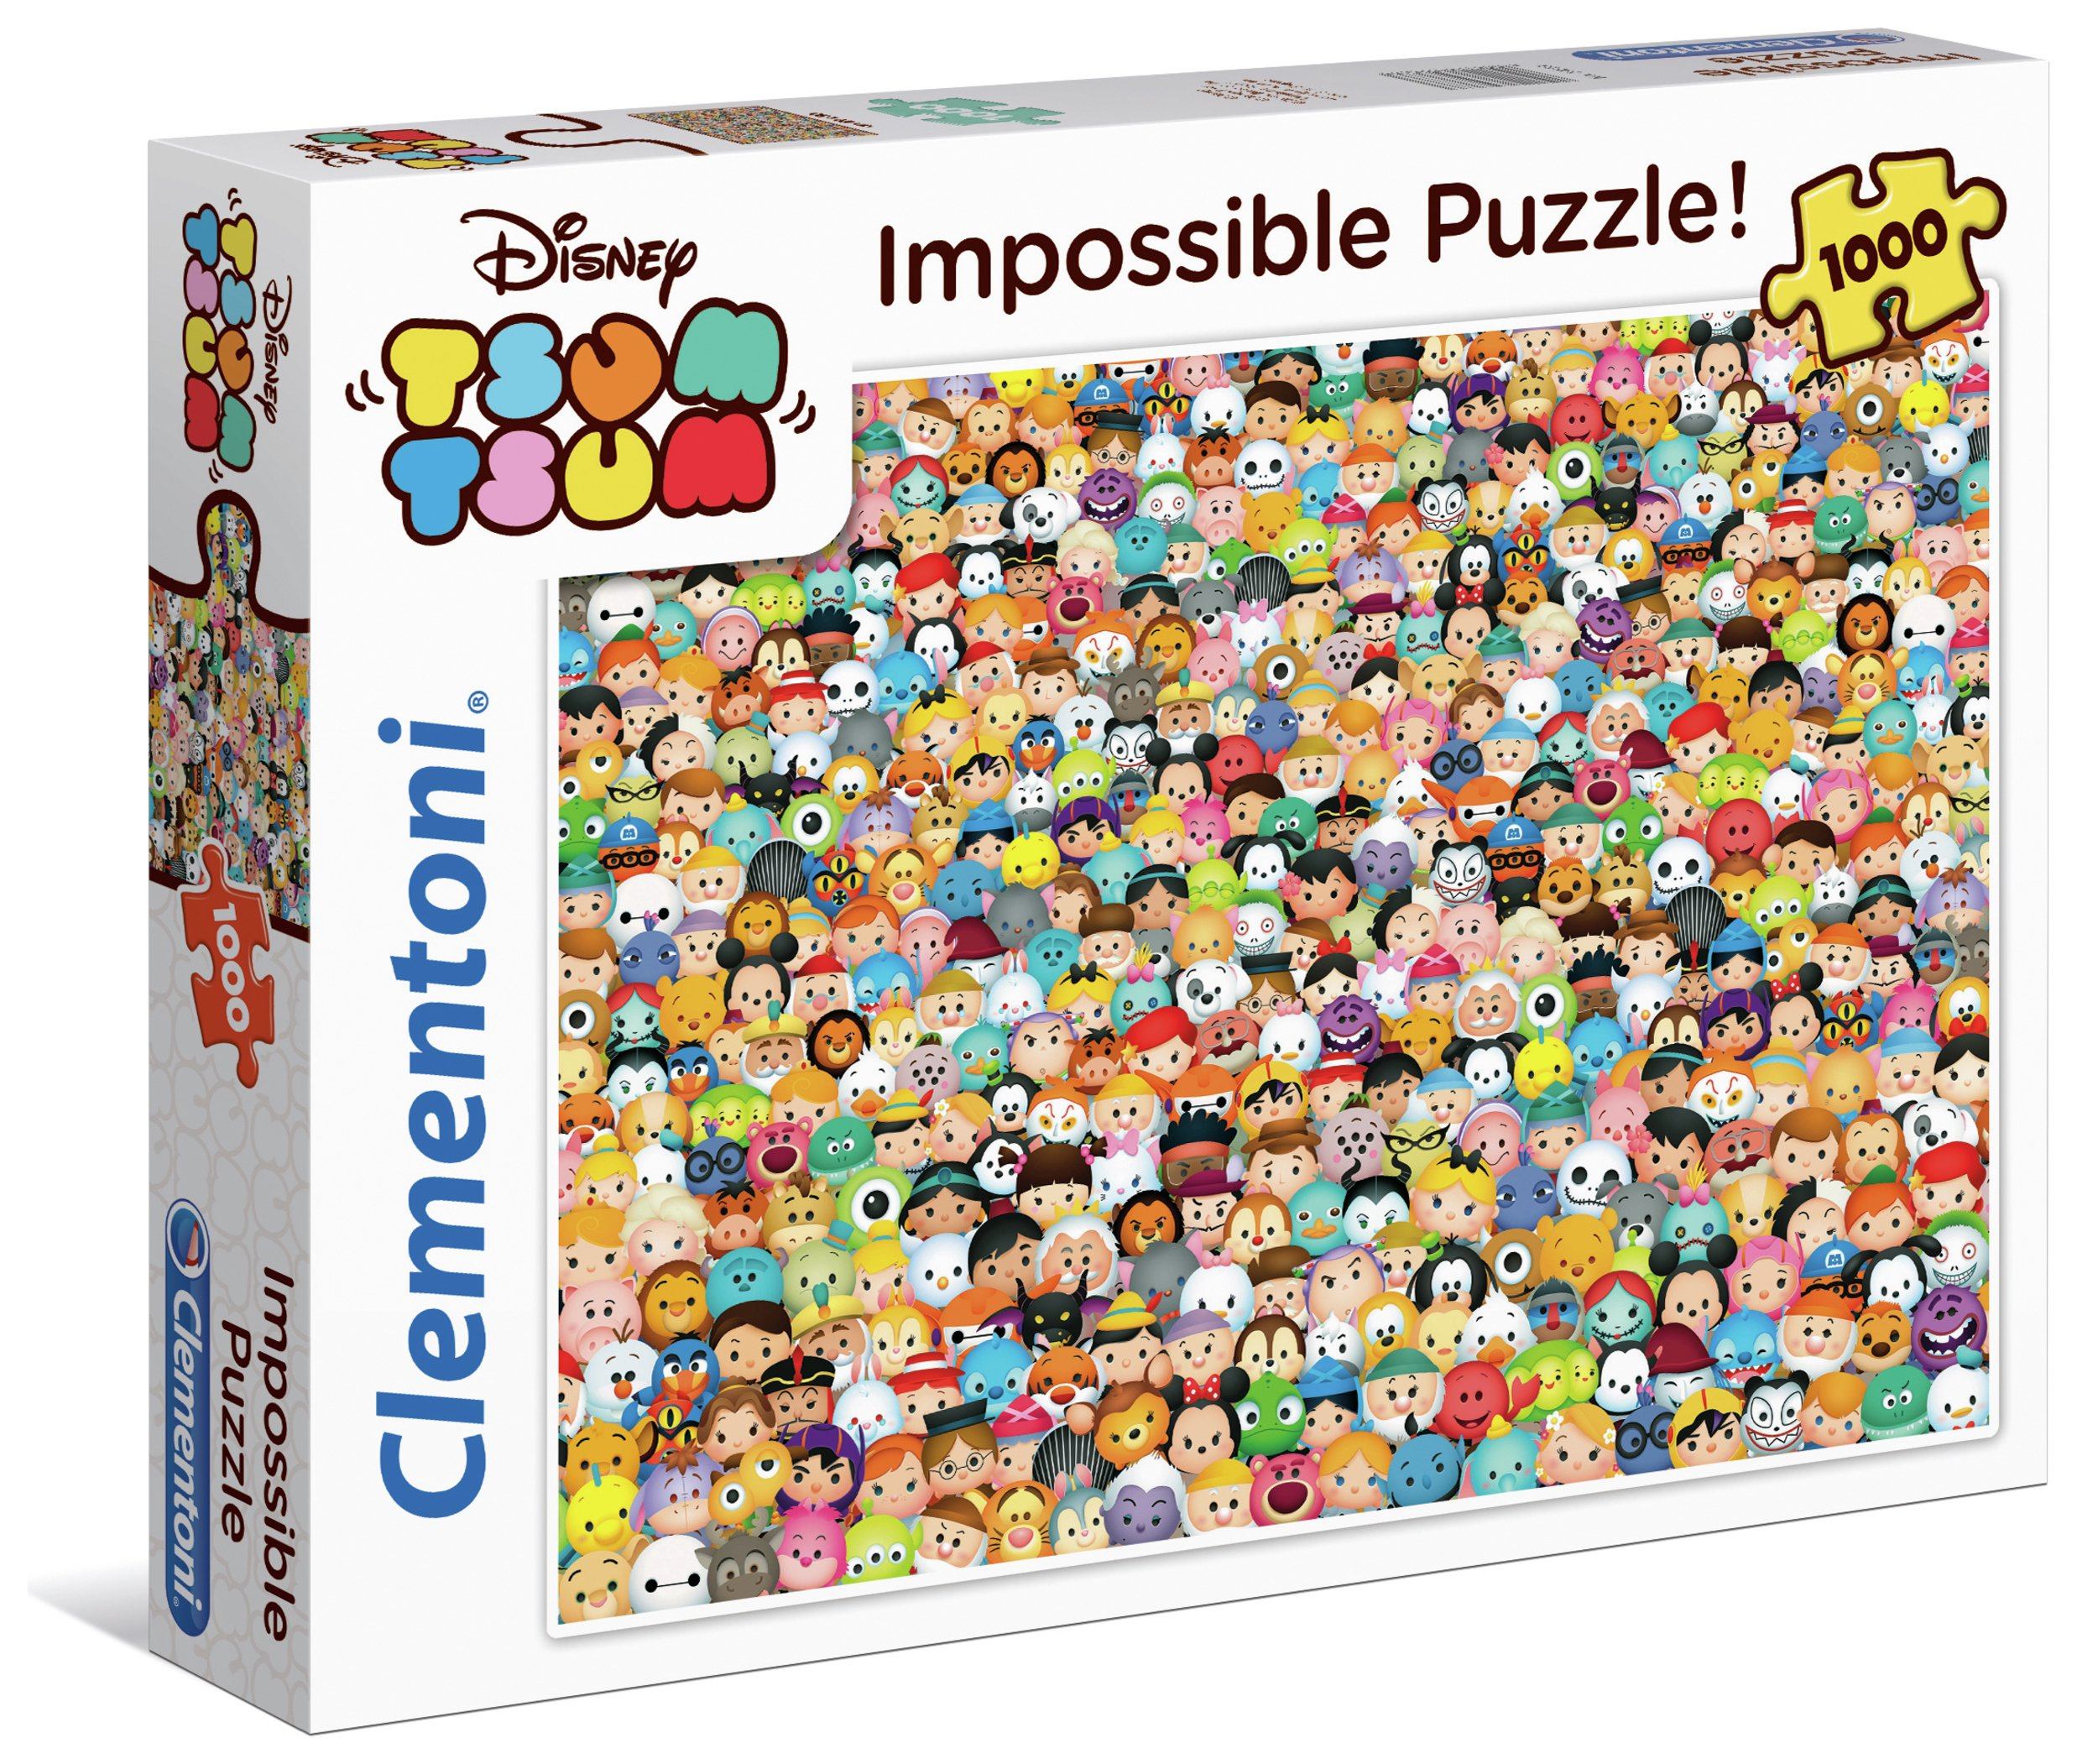 Image of Clenmentoni Tsum Tsum 1000 Impossible Puzzle